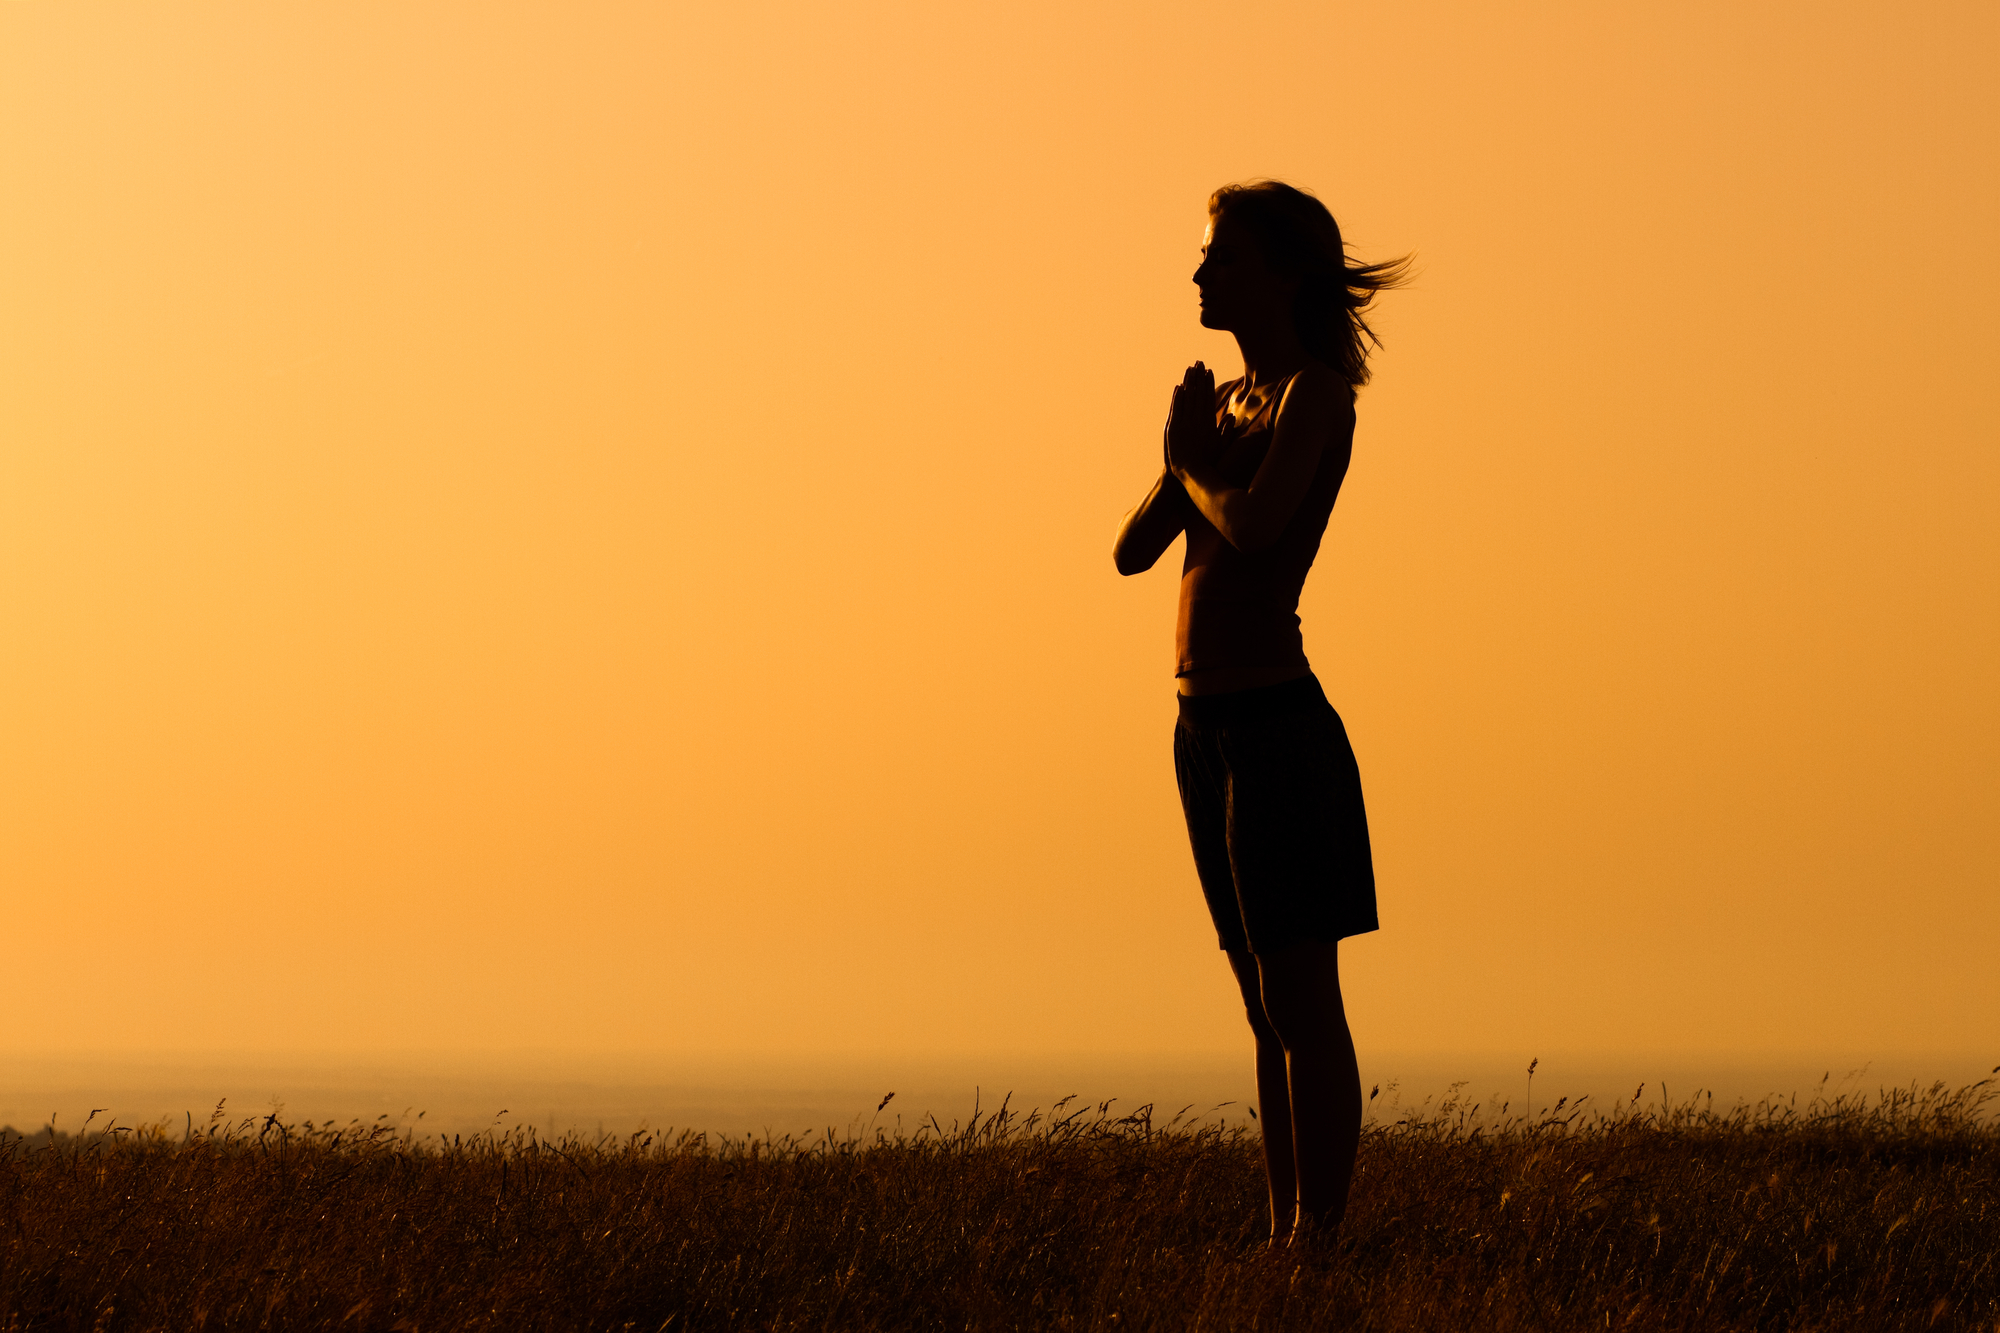 Woman in a thankful prayer pose out in nature during sunset